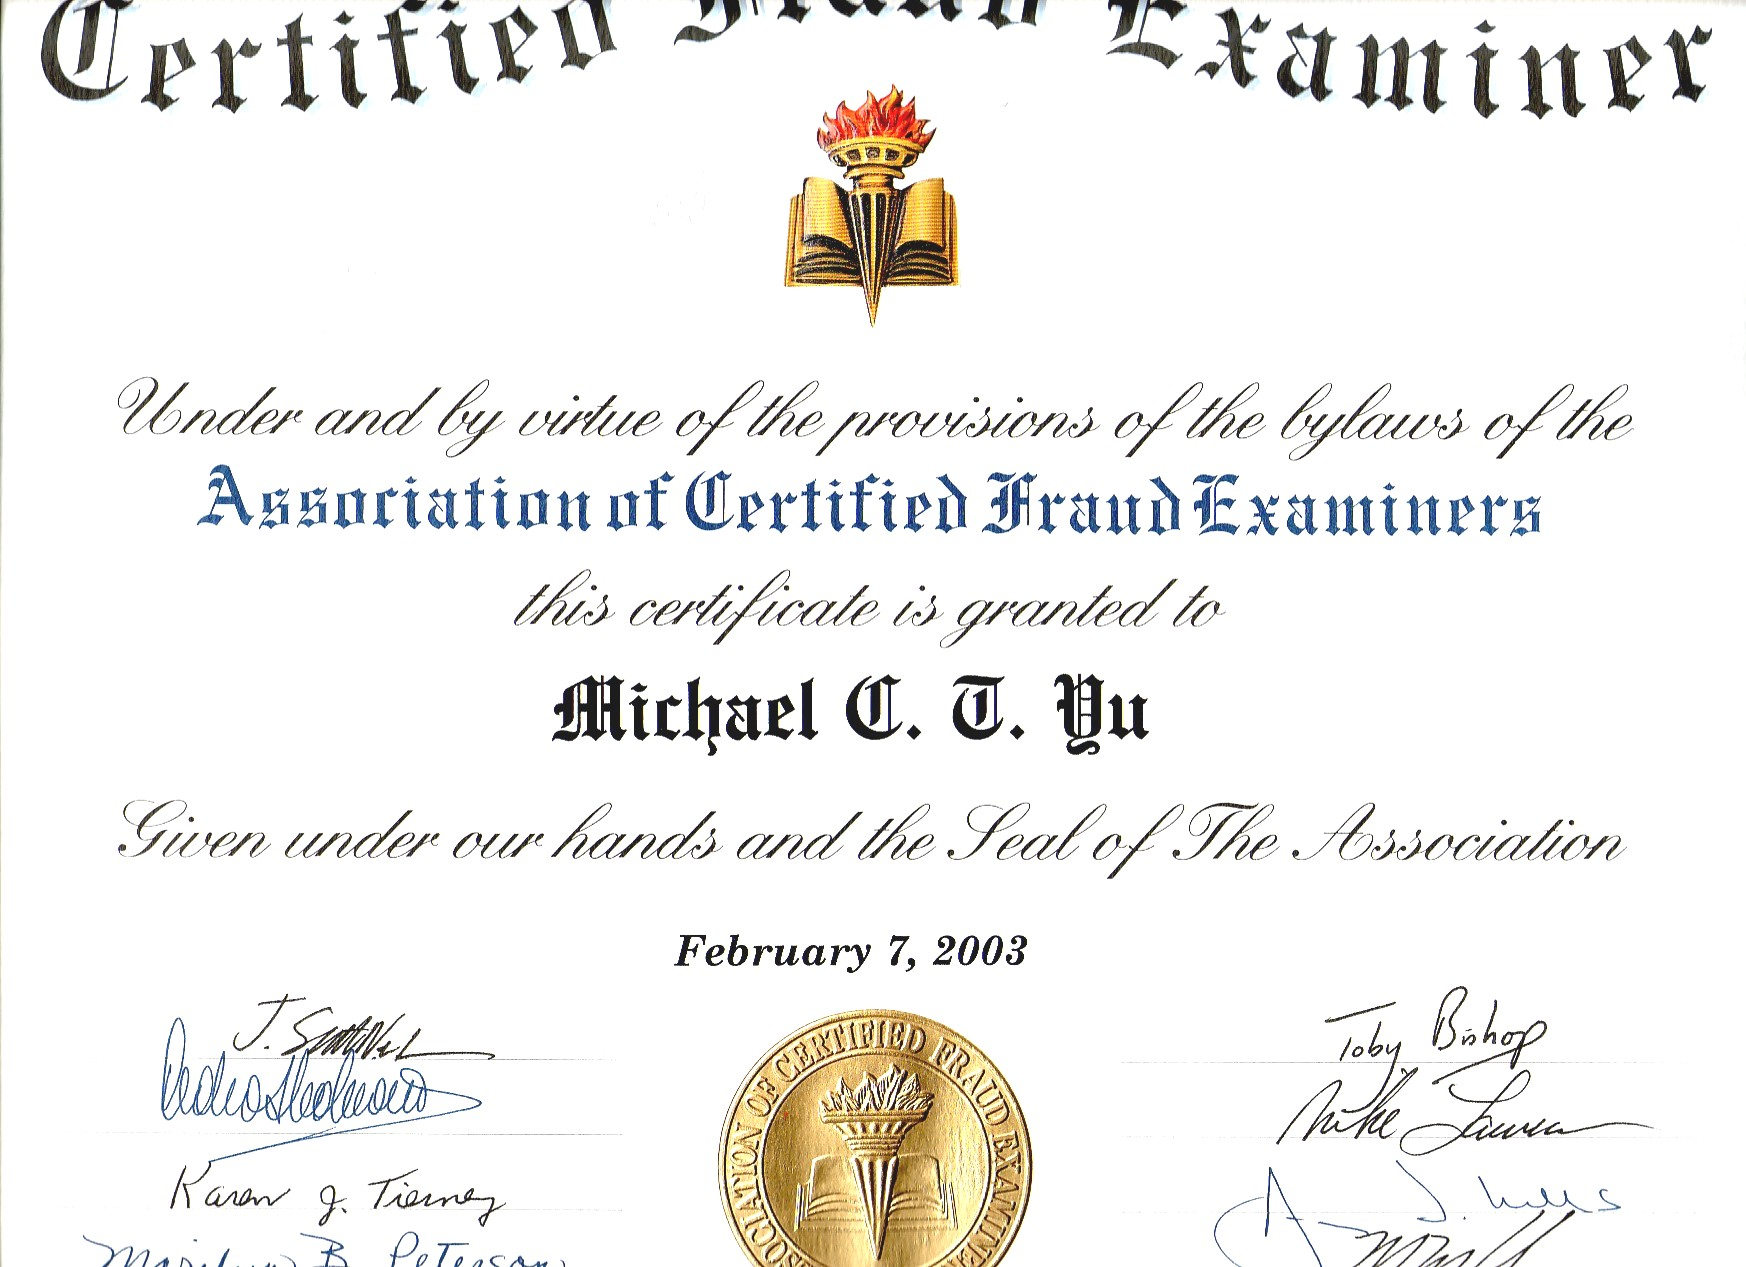 Professional Certifications Examreview Home